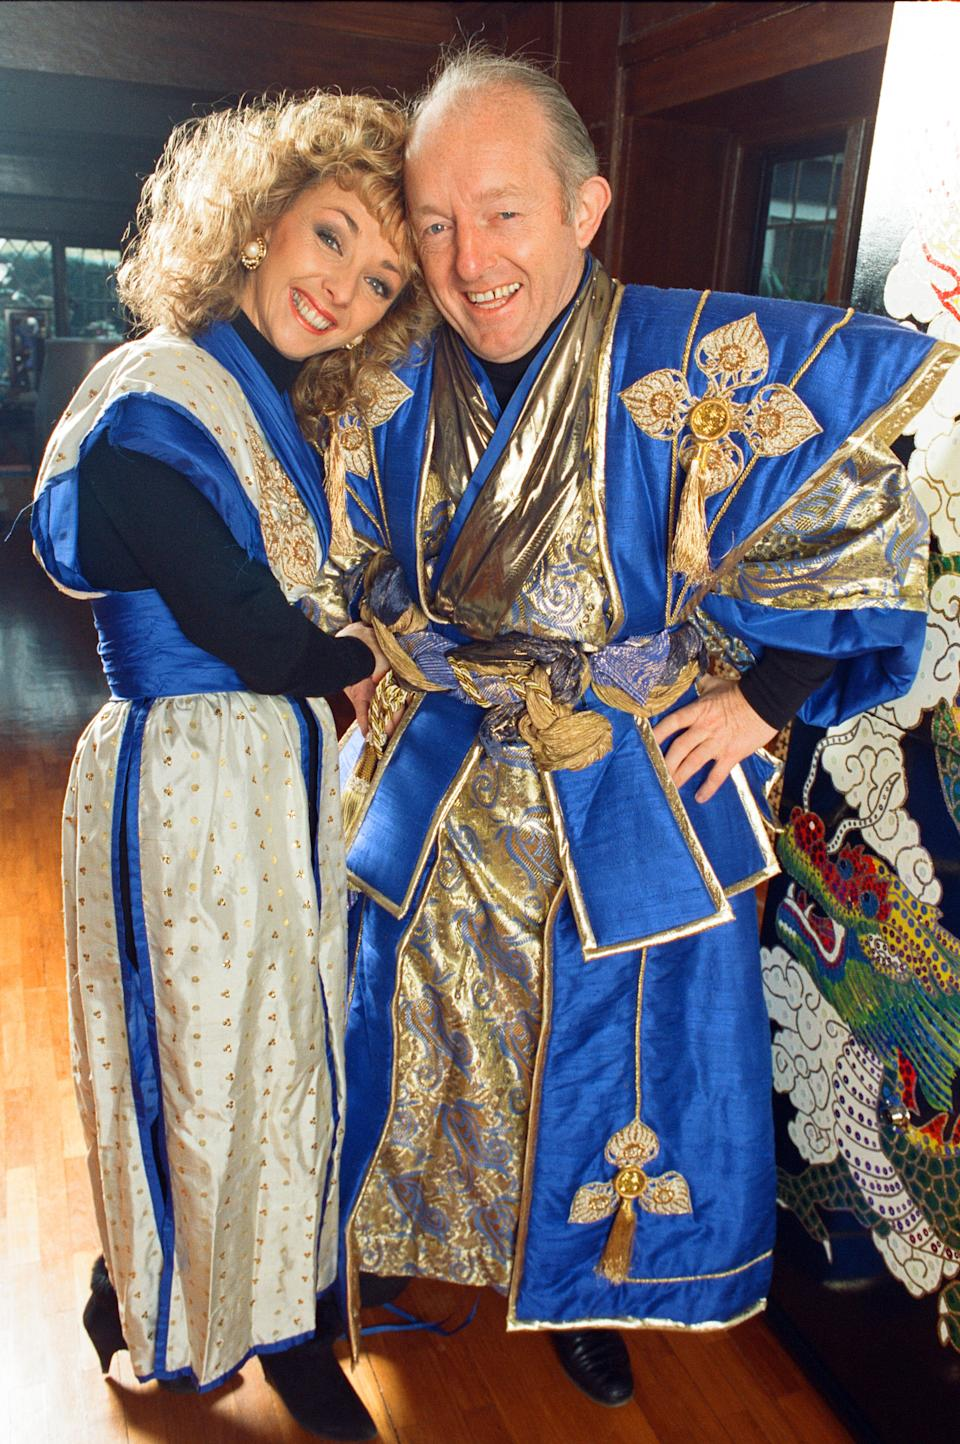 Magician Paul Daniels and his wife Debbie McGee pictured at home. 13th December 1991. (Photo by Ken Lennox/Mirrorpix/Getty Images)